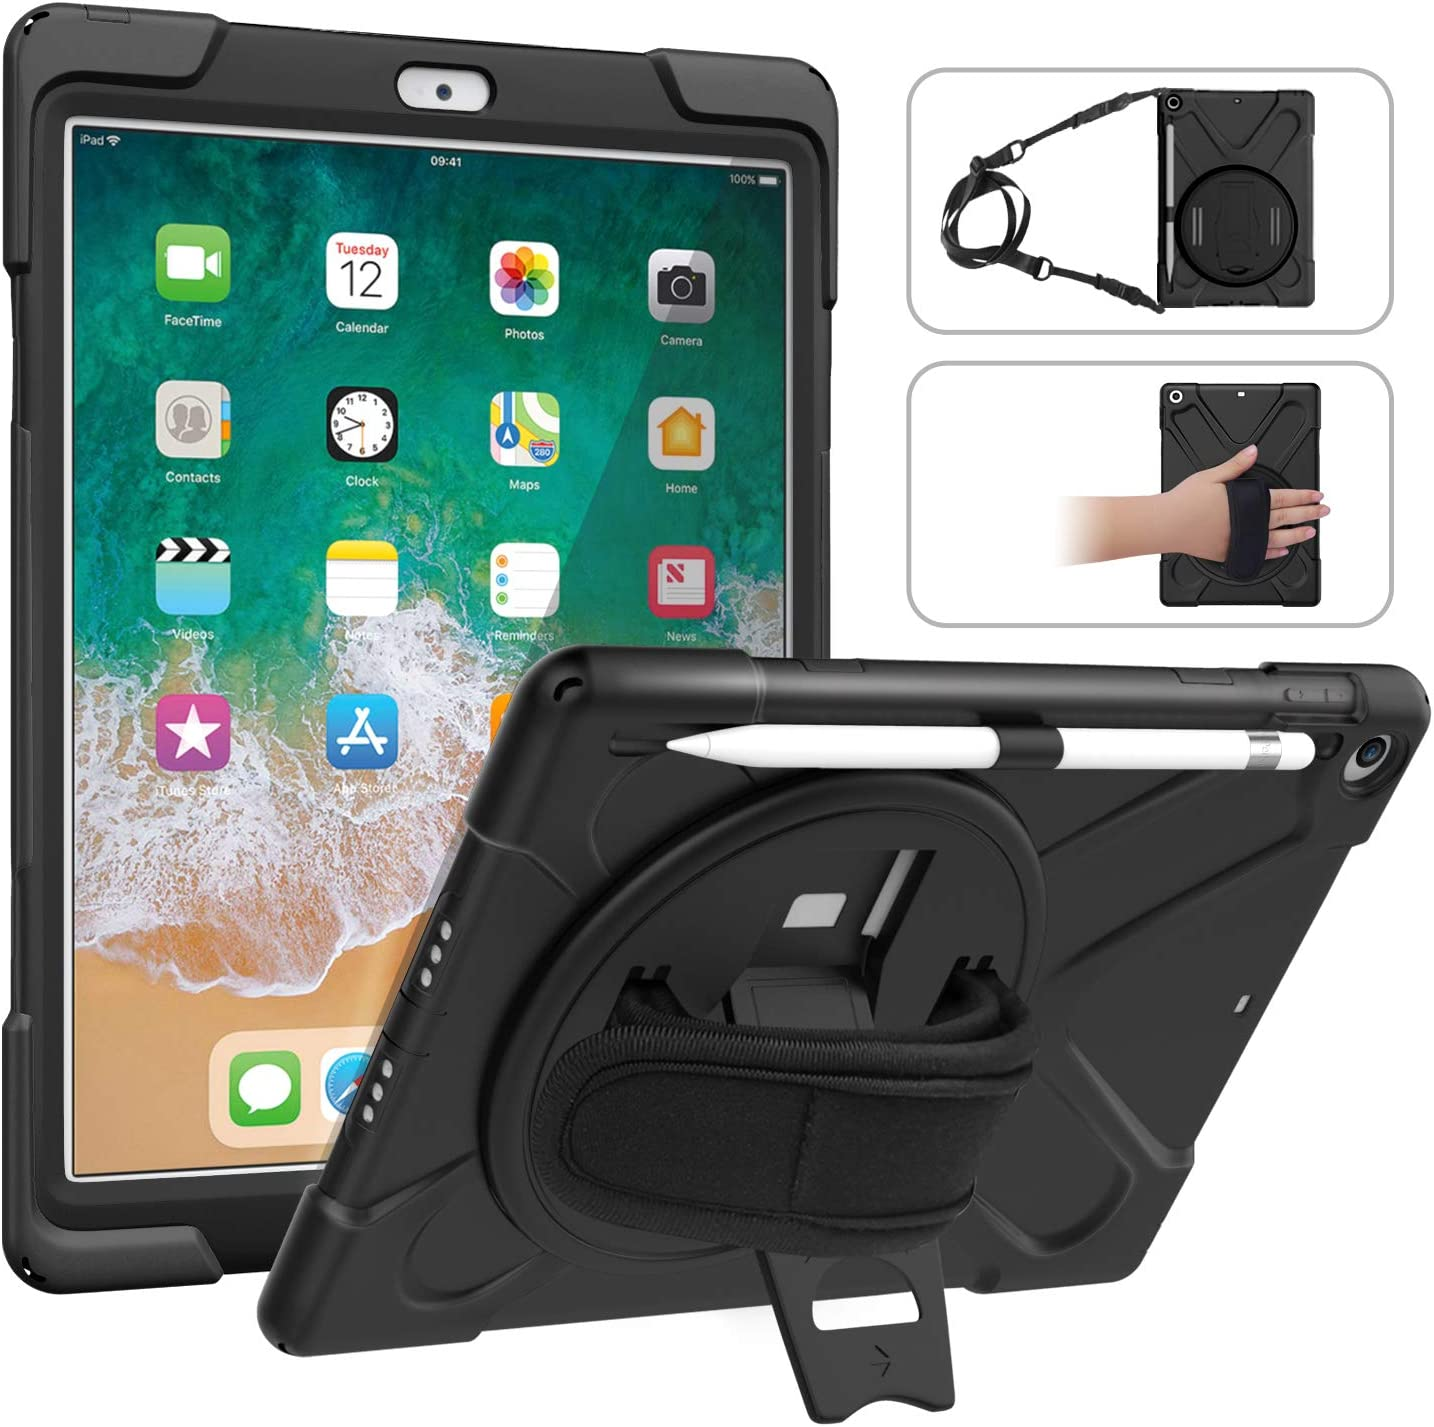 MoKo Fit 2018/2017 iPad 9.7 6th/5th Generation - Shockproof Protection Rugged Protective Heavy Duty iPad Case with 360 Degree Rotate Stand, Hand Strap, Shoulder Strap, Pencil Holder - Black